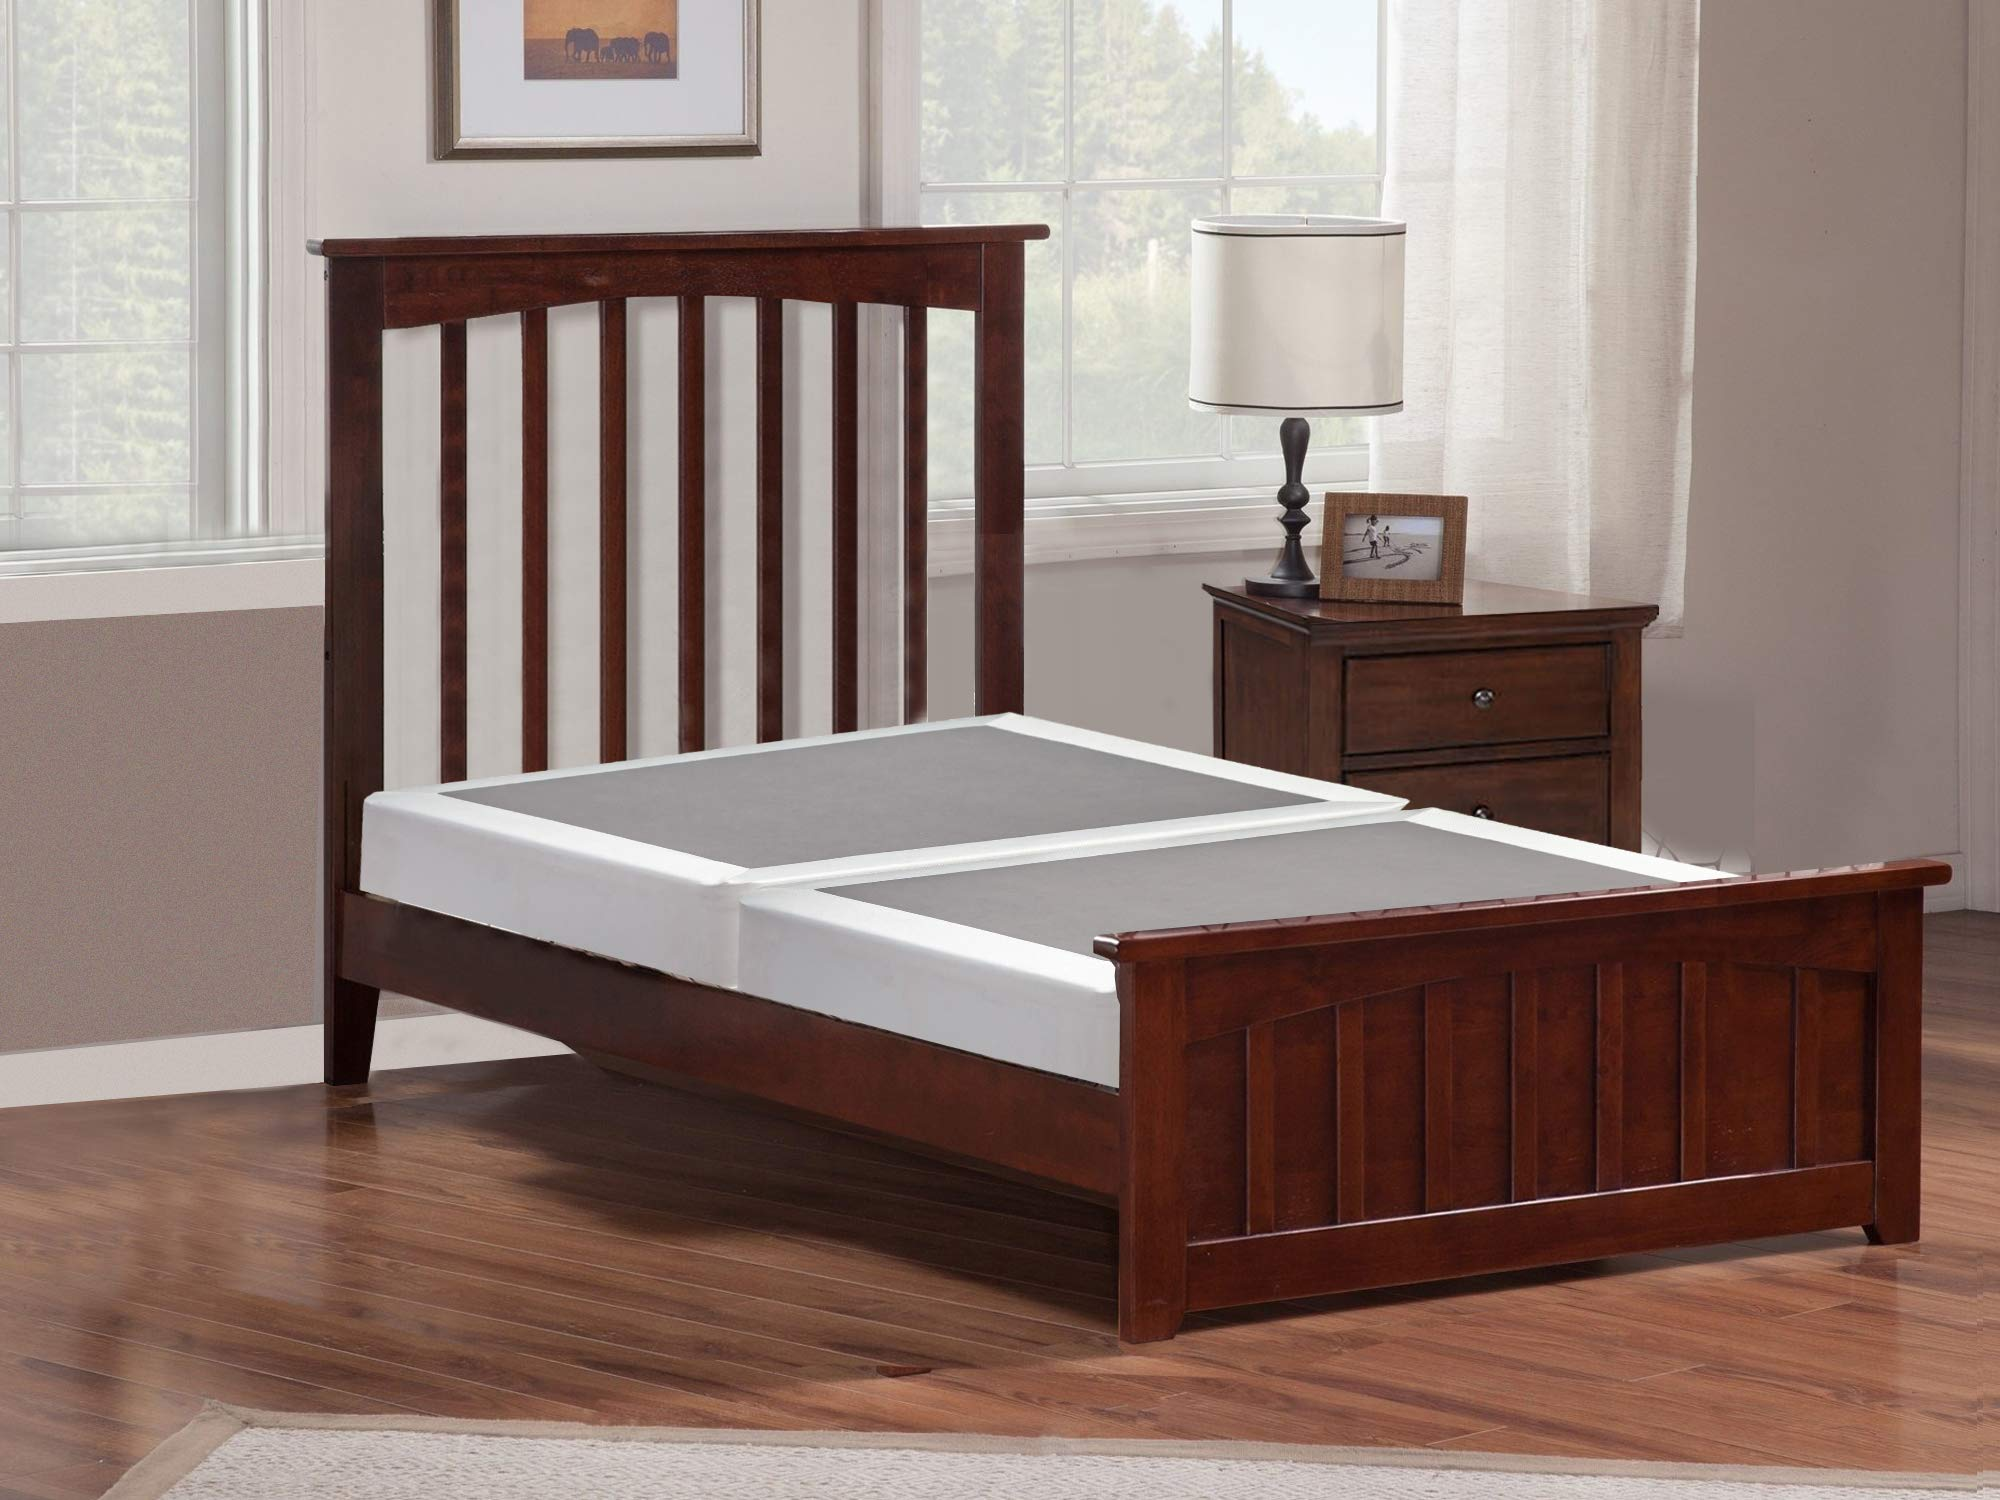 Mayton 4-Inch Twin XL Size Split Box Spring Low Profile Mattress Foundation/Strong Structure, 38x79